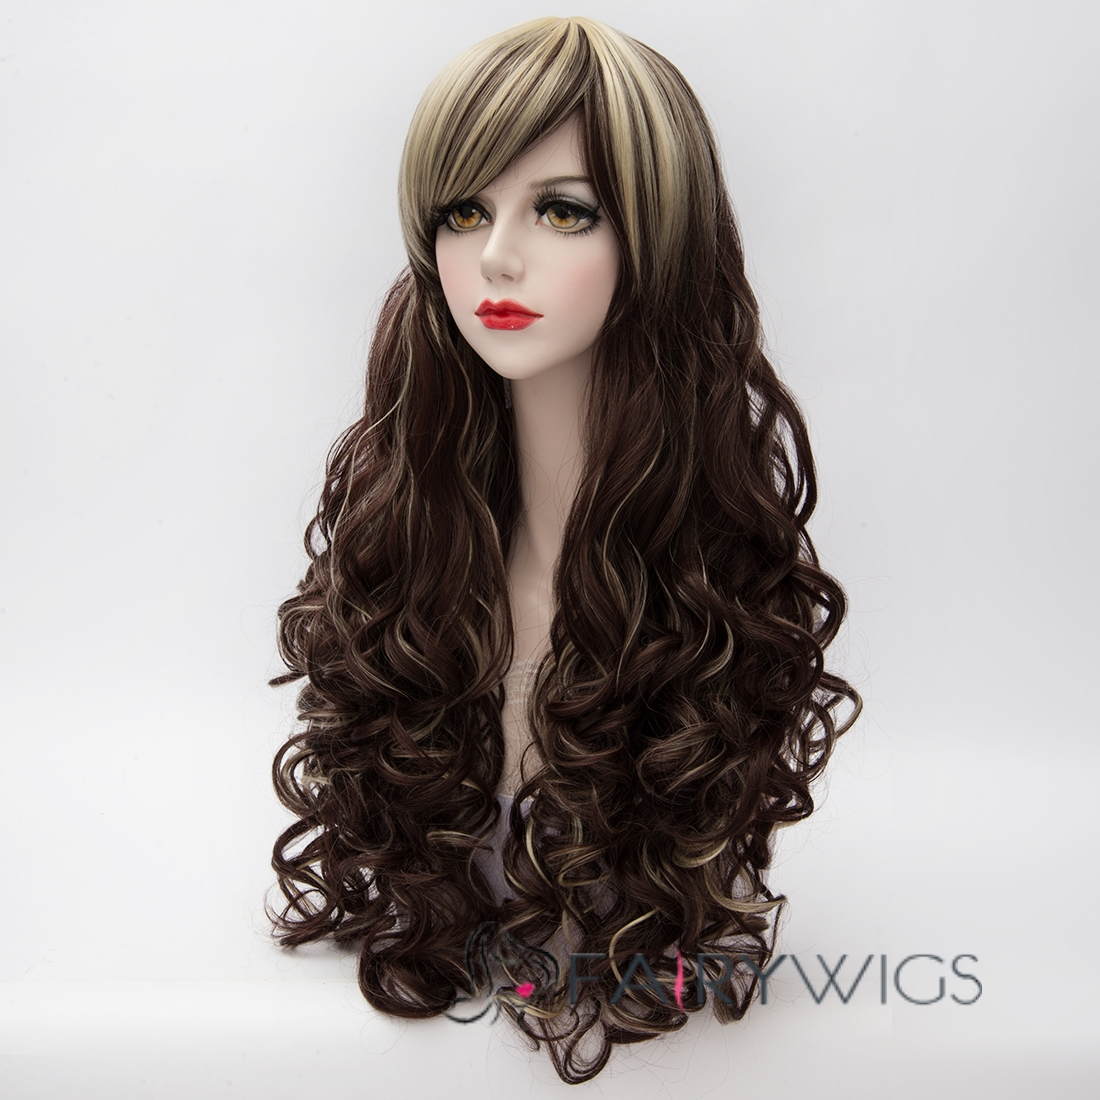 Chocolate Long Curly Lolita Wig 28 Inch Fairywigs Com